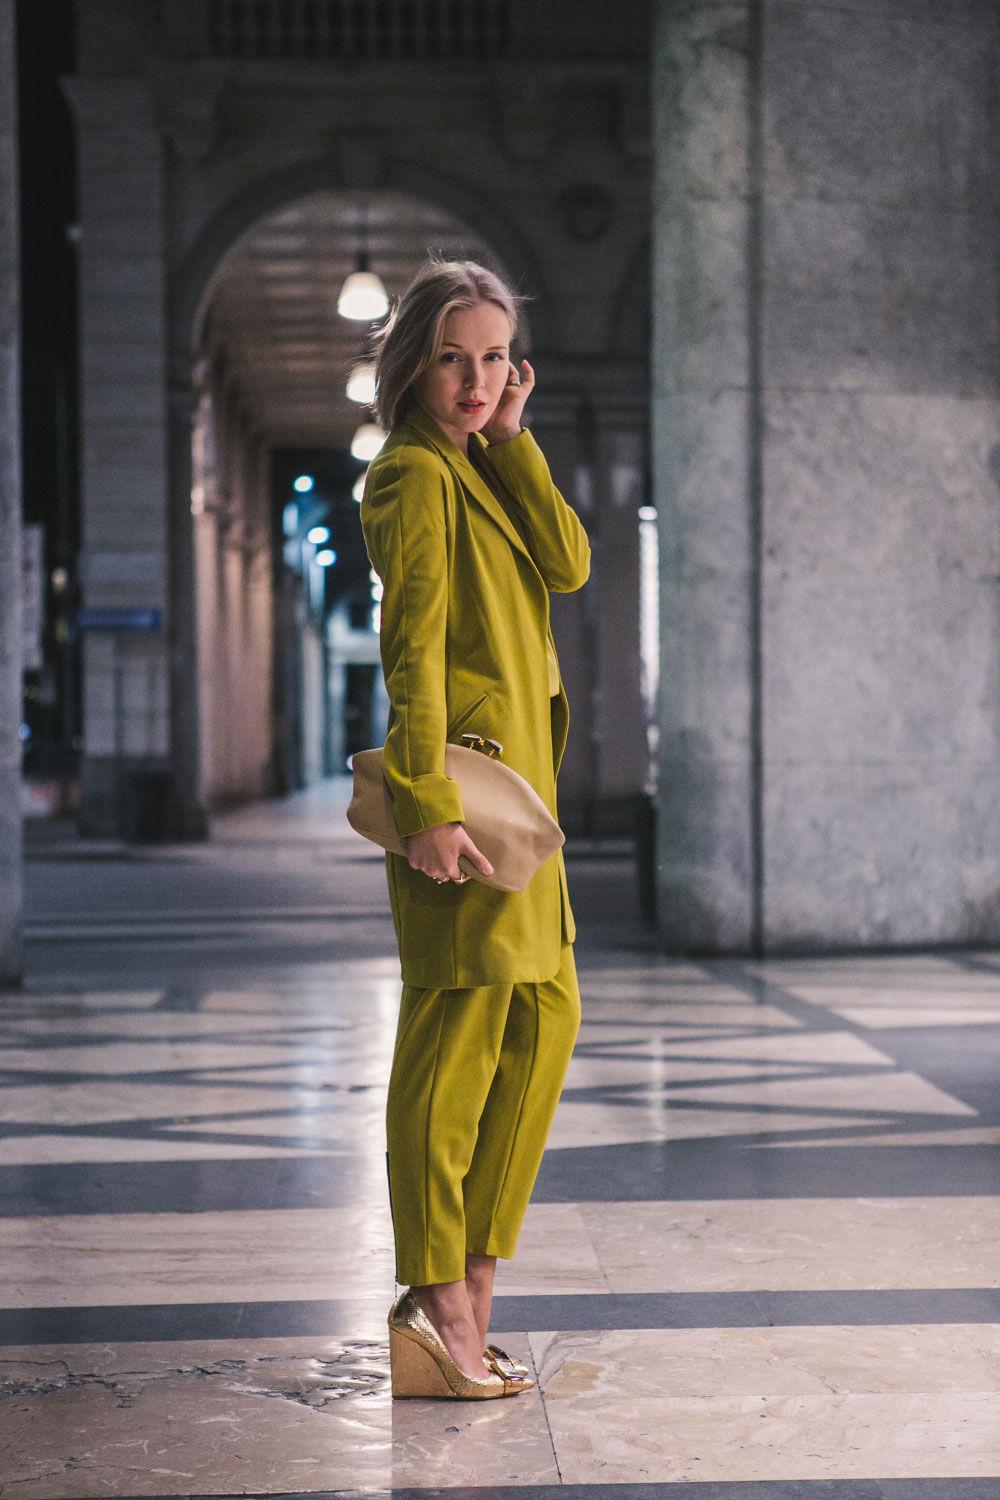 darya-kamalova-fashion-lifestyle-blogger-from-thecablook-on-san-pietro-all-orto-opening-party-in-milan-wears-asos-suit-marni-clutch-burberry-prosum-wedges-6907